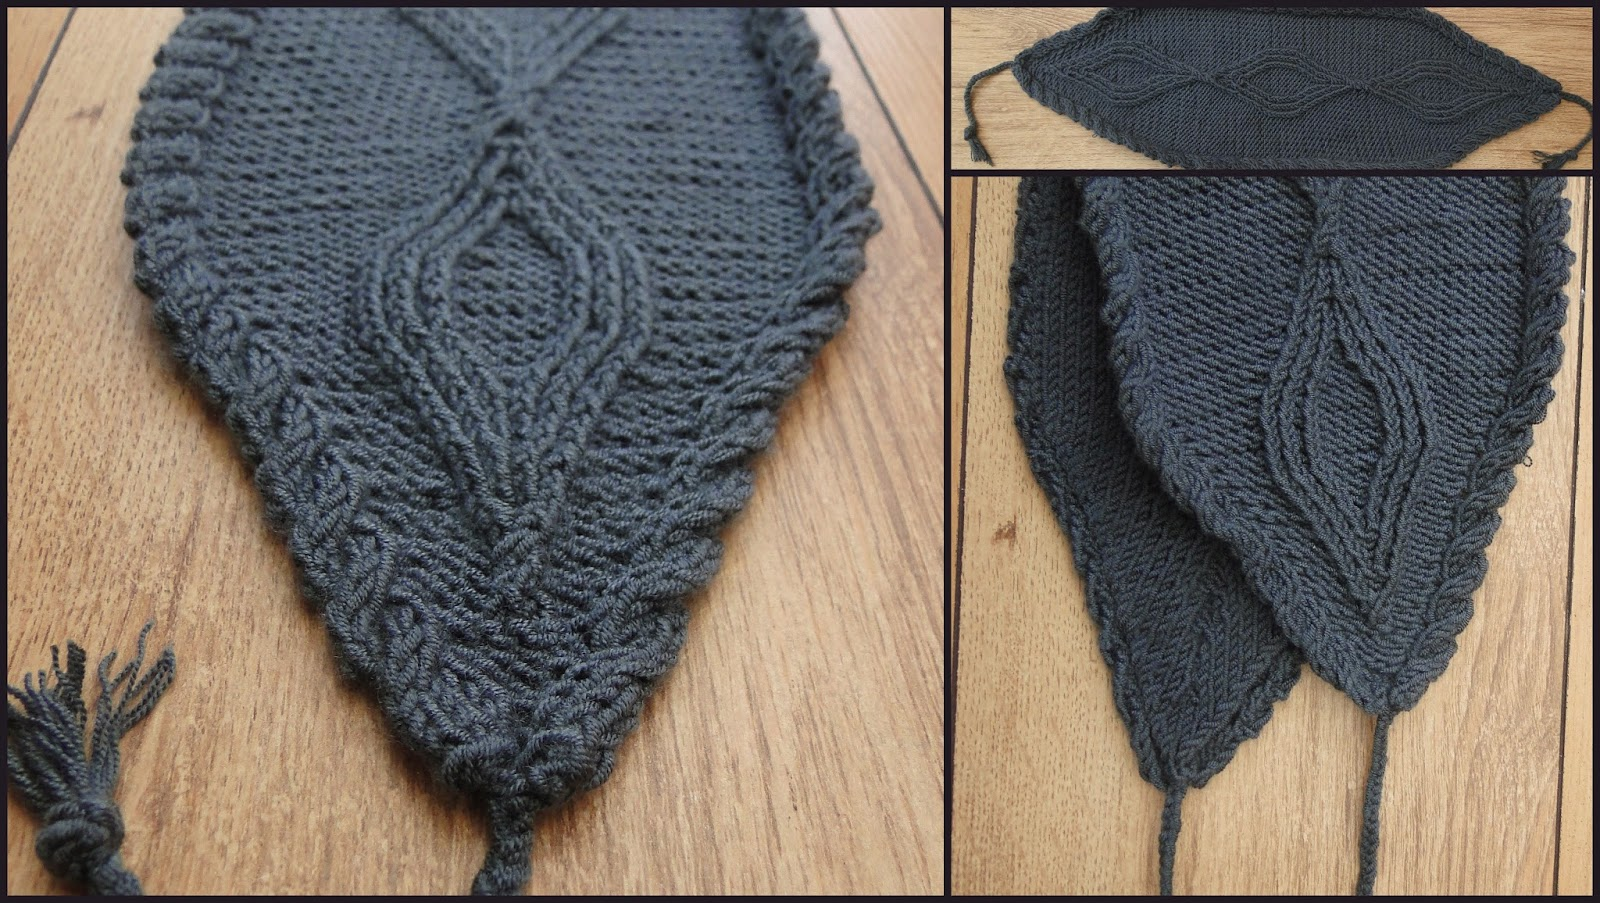 Gray Headband knitting pattern